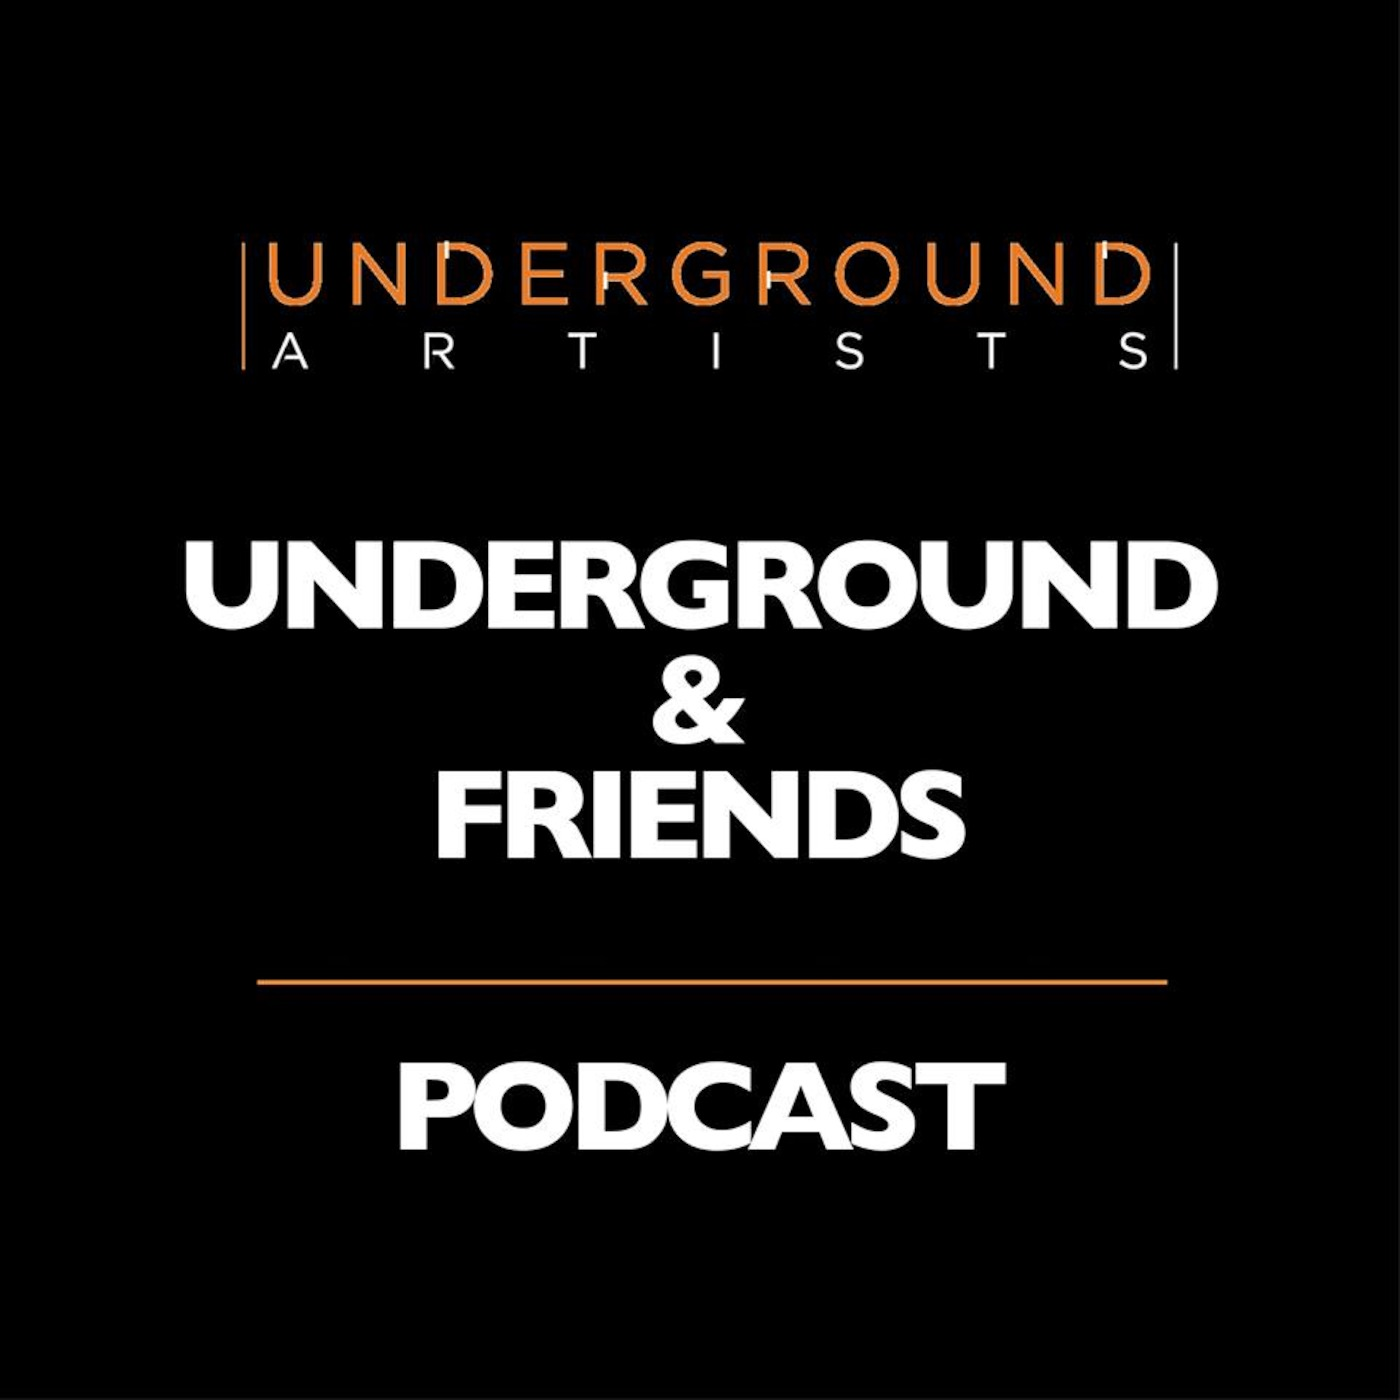 Underground & Friends Podcast